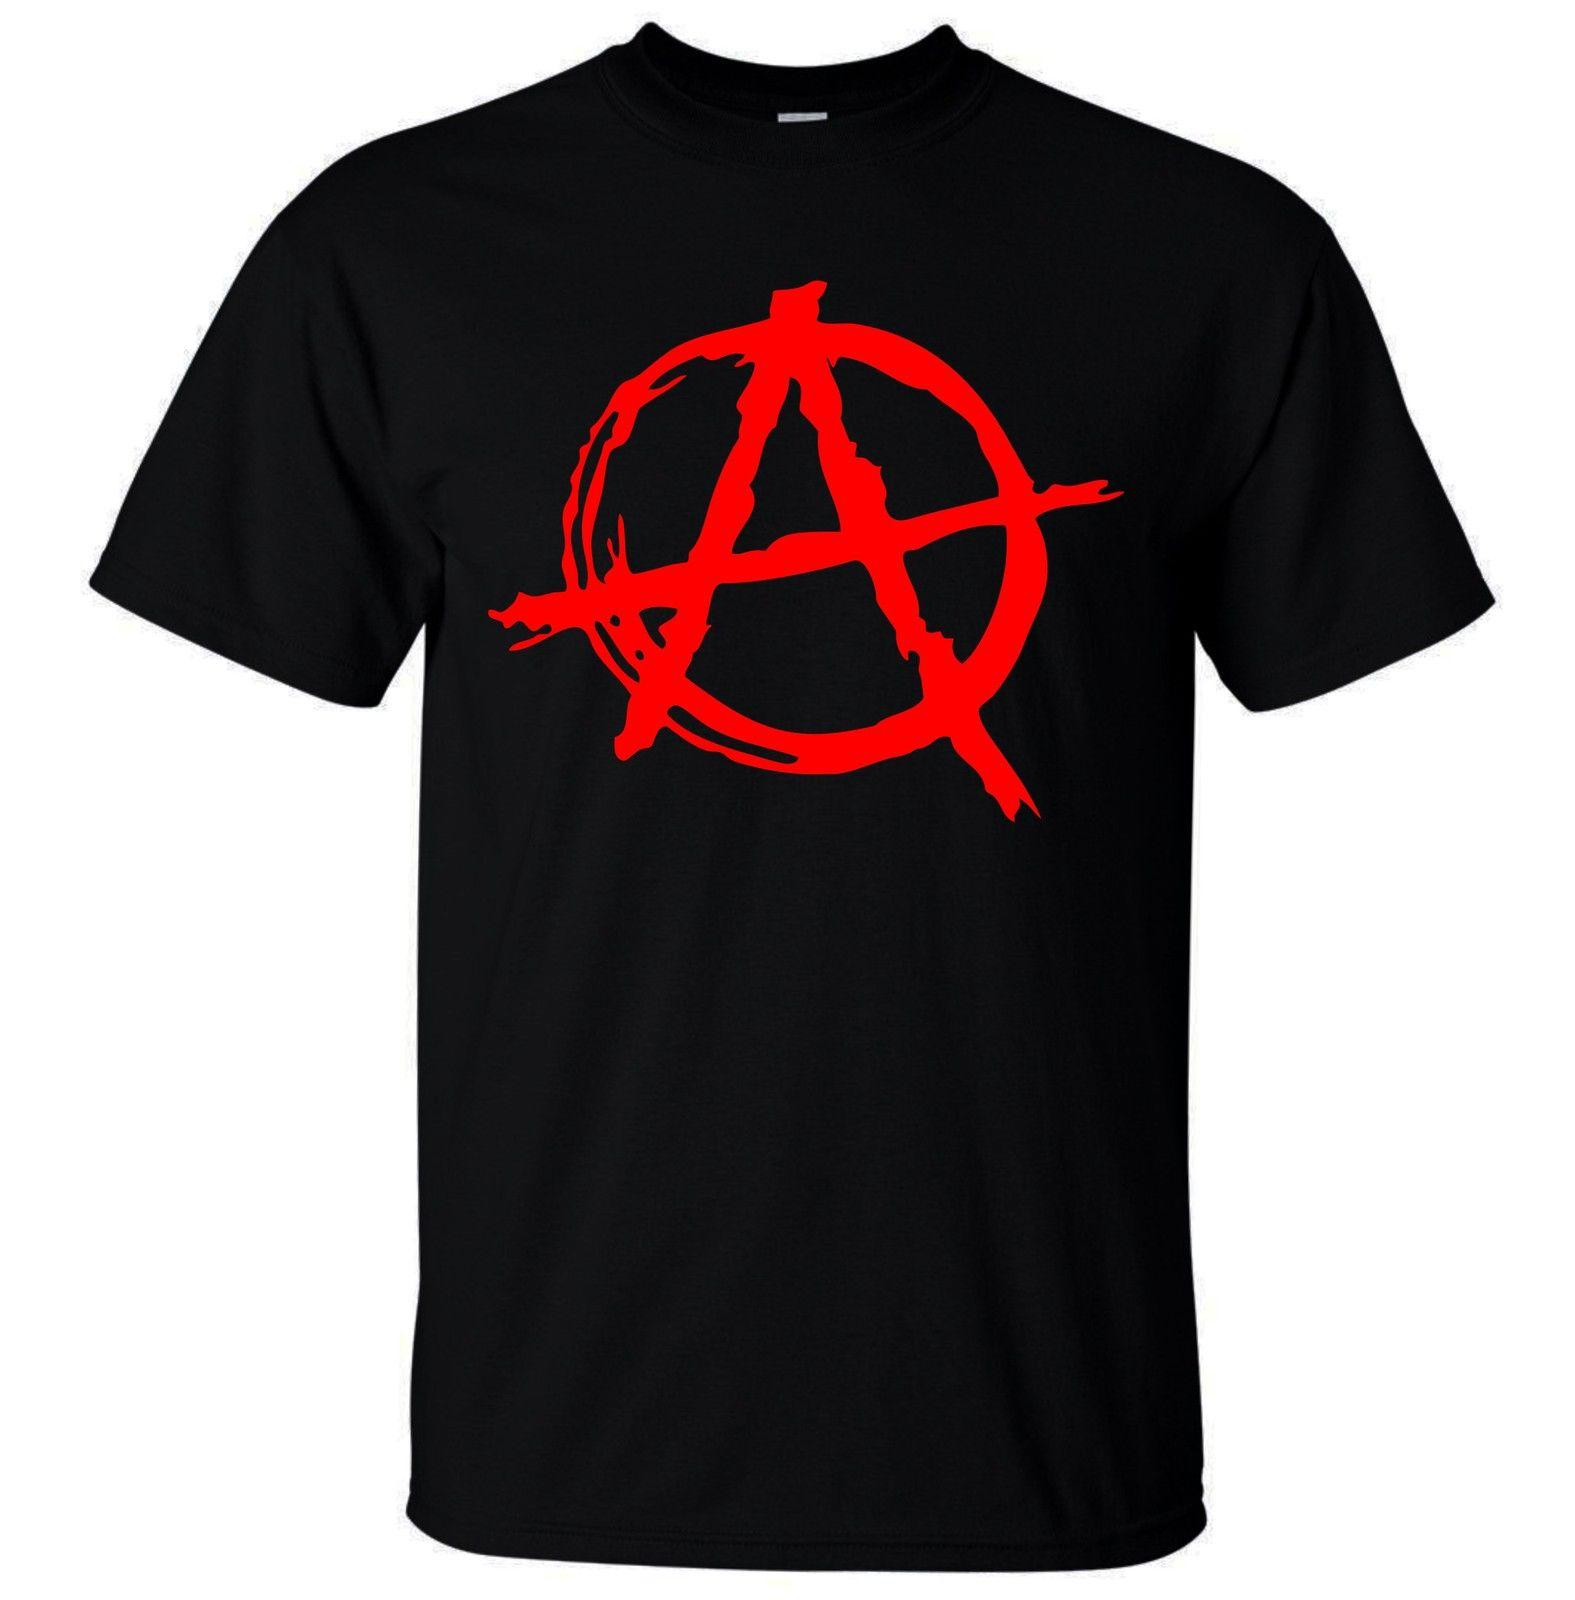 Print casual t shirt men brand anarchy symbol t shirt punk rock t print casual t shirt men brand anarchy symbol t shirt punk rock t shirt bedlam evil anarchist war rocker t shirts cheap t shirts vintage from zfa03 buycottarizona Gallery